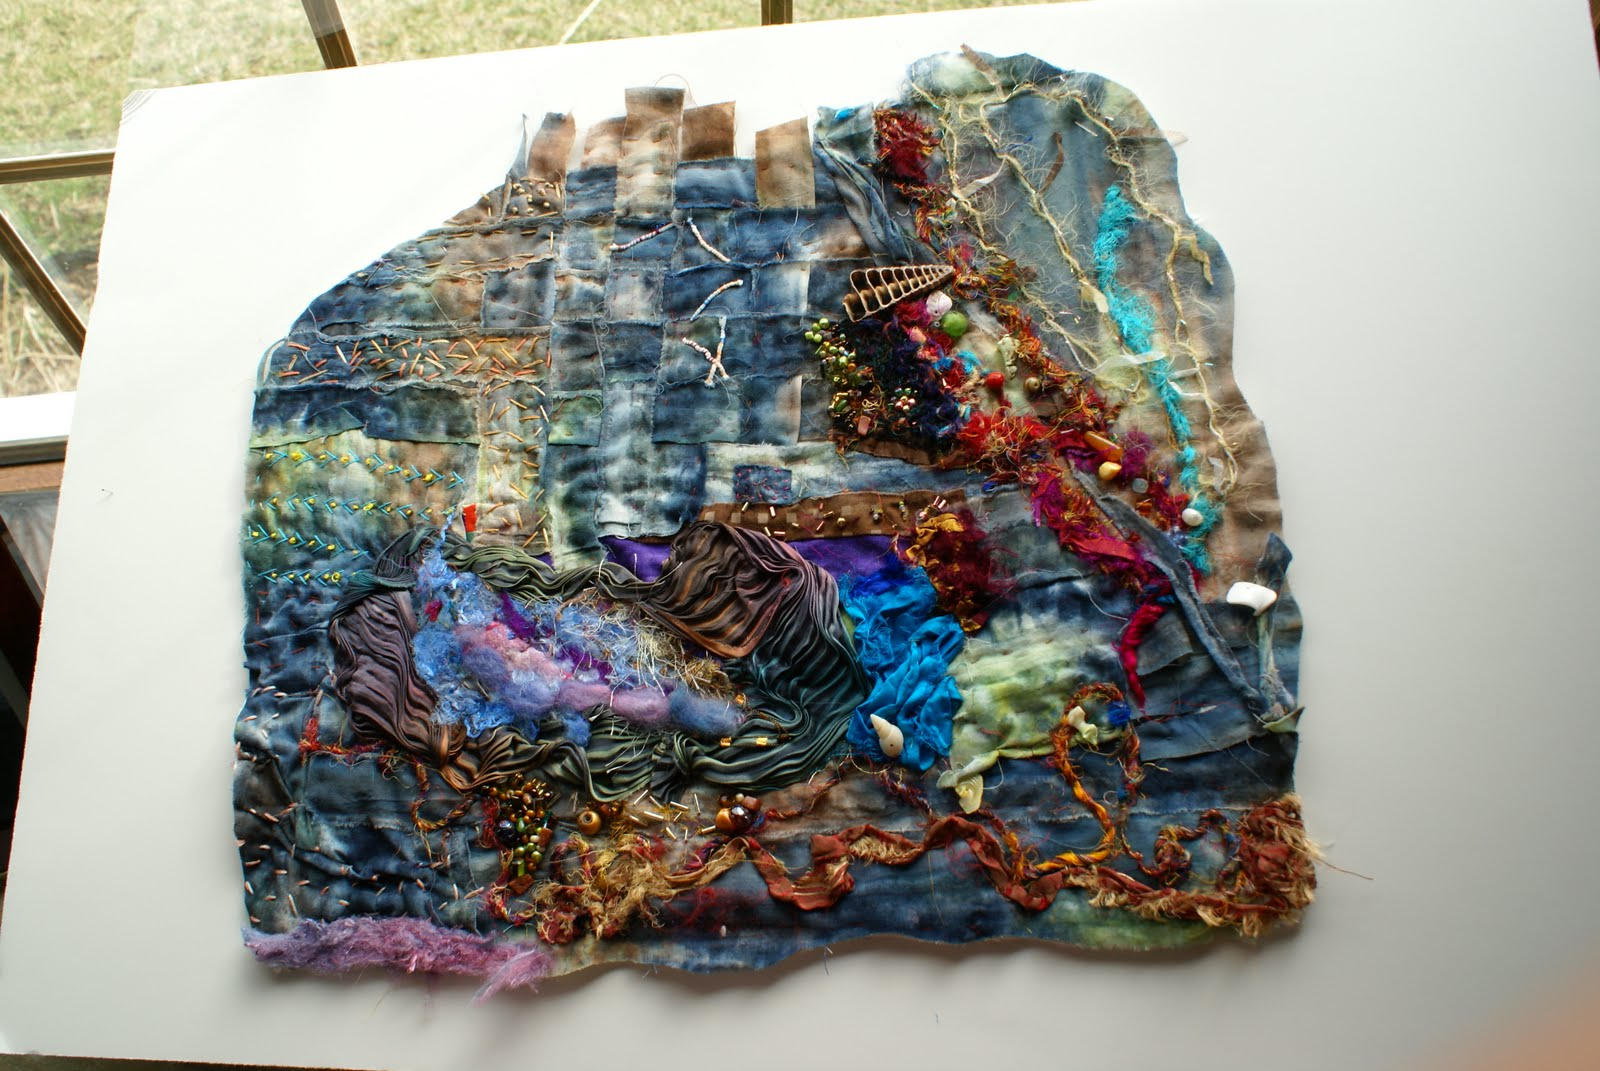 Textile Wall Art art crafty: textile art 2011. wall art and fiber pieces